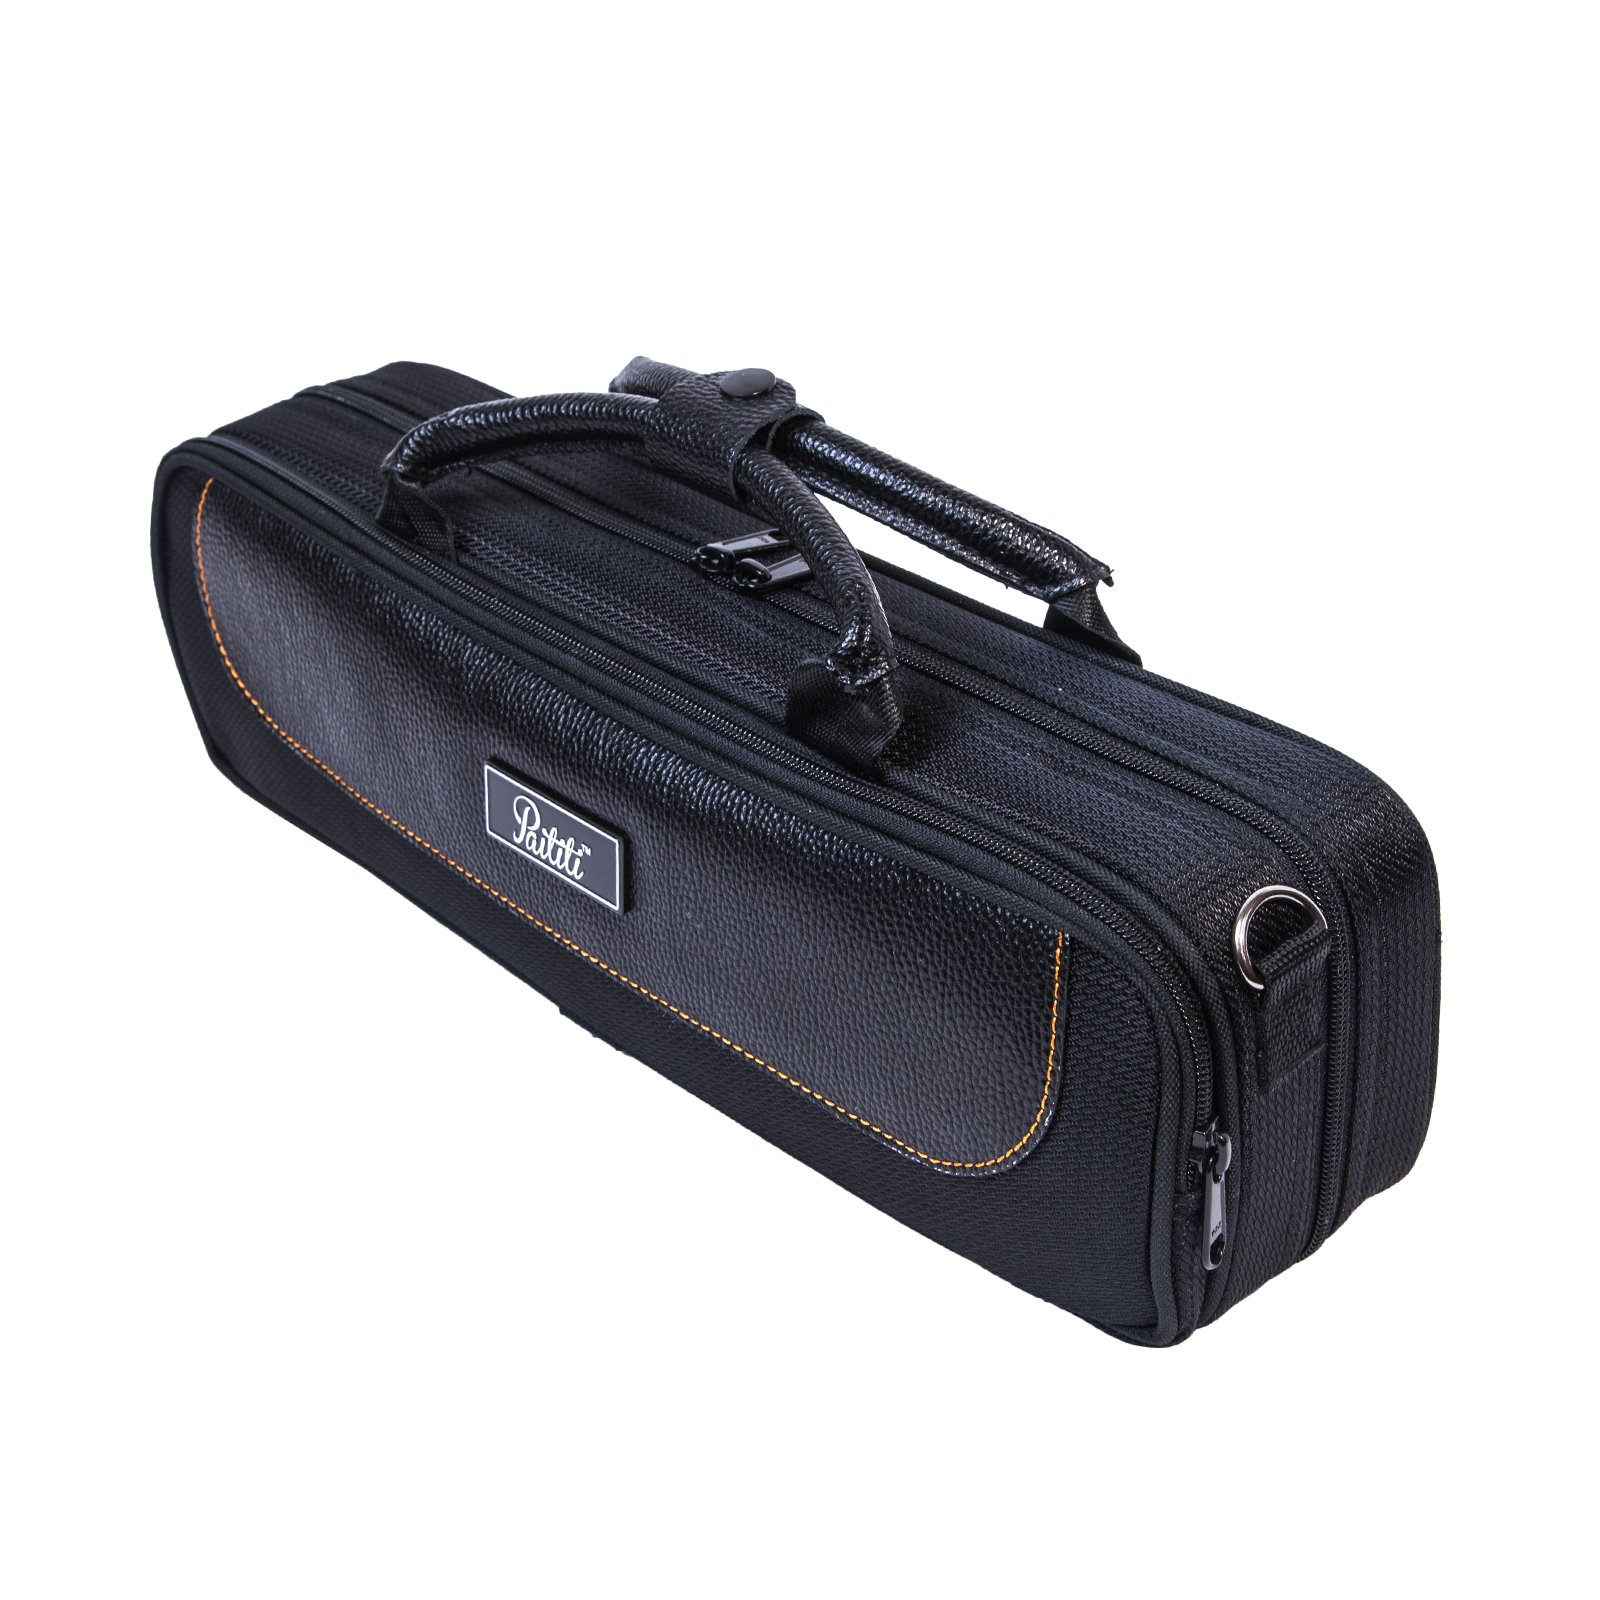 Paititi Genuine Leather ''B'' Flute Lightweight Case with Shoulder Strap Black Color